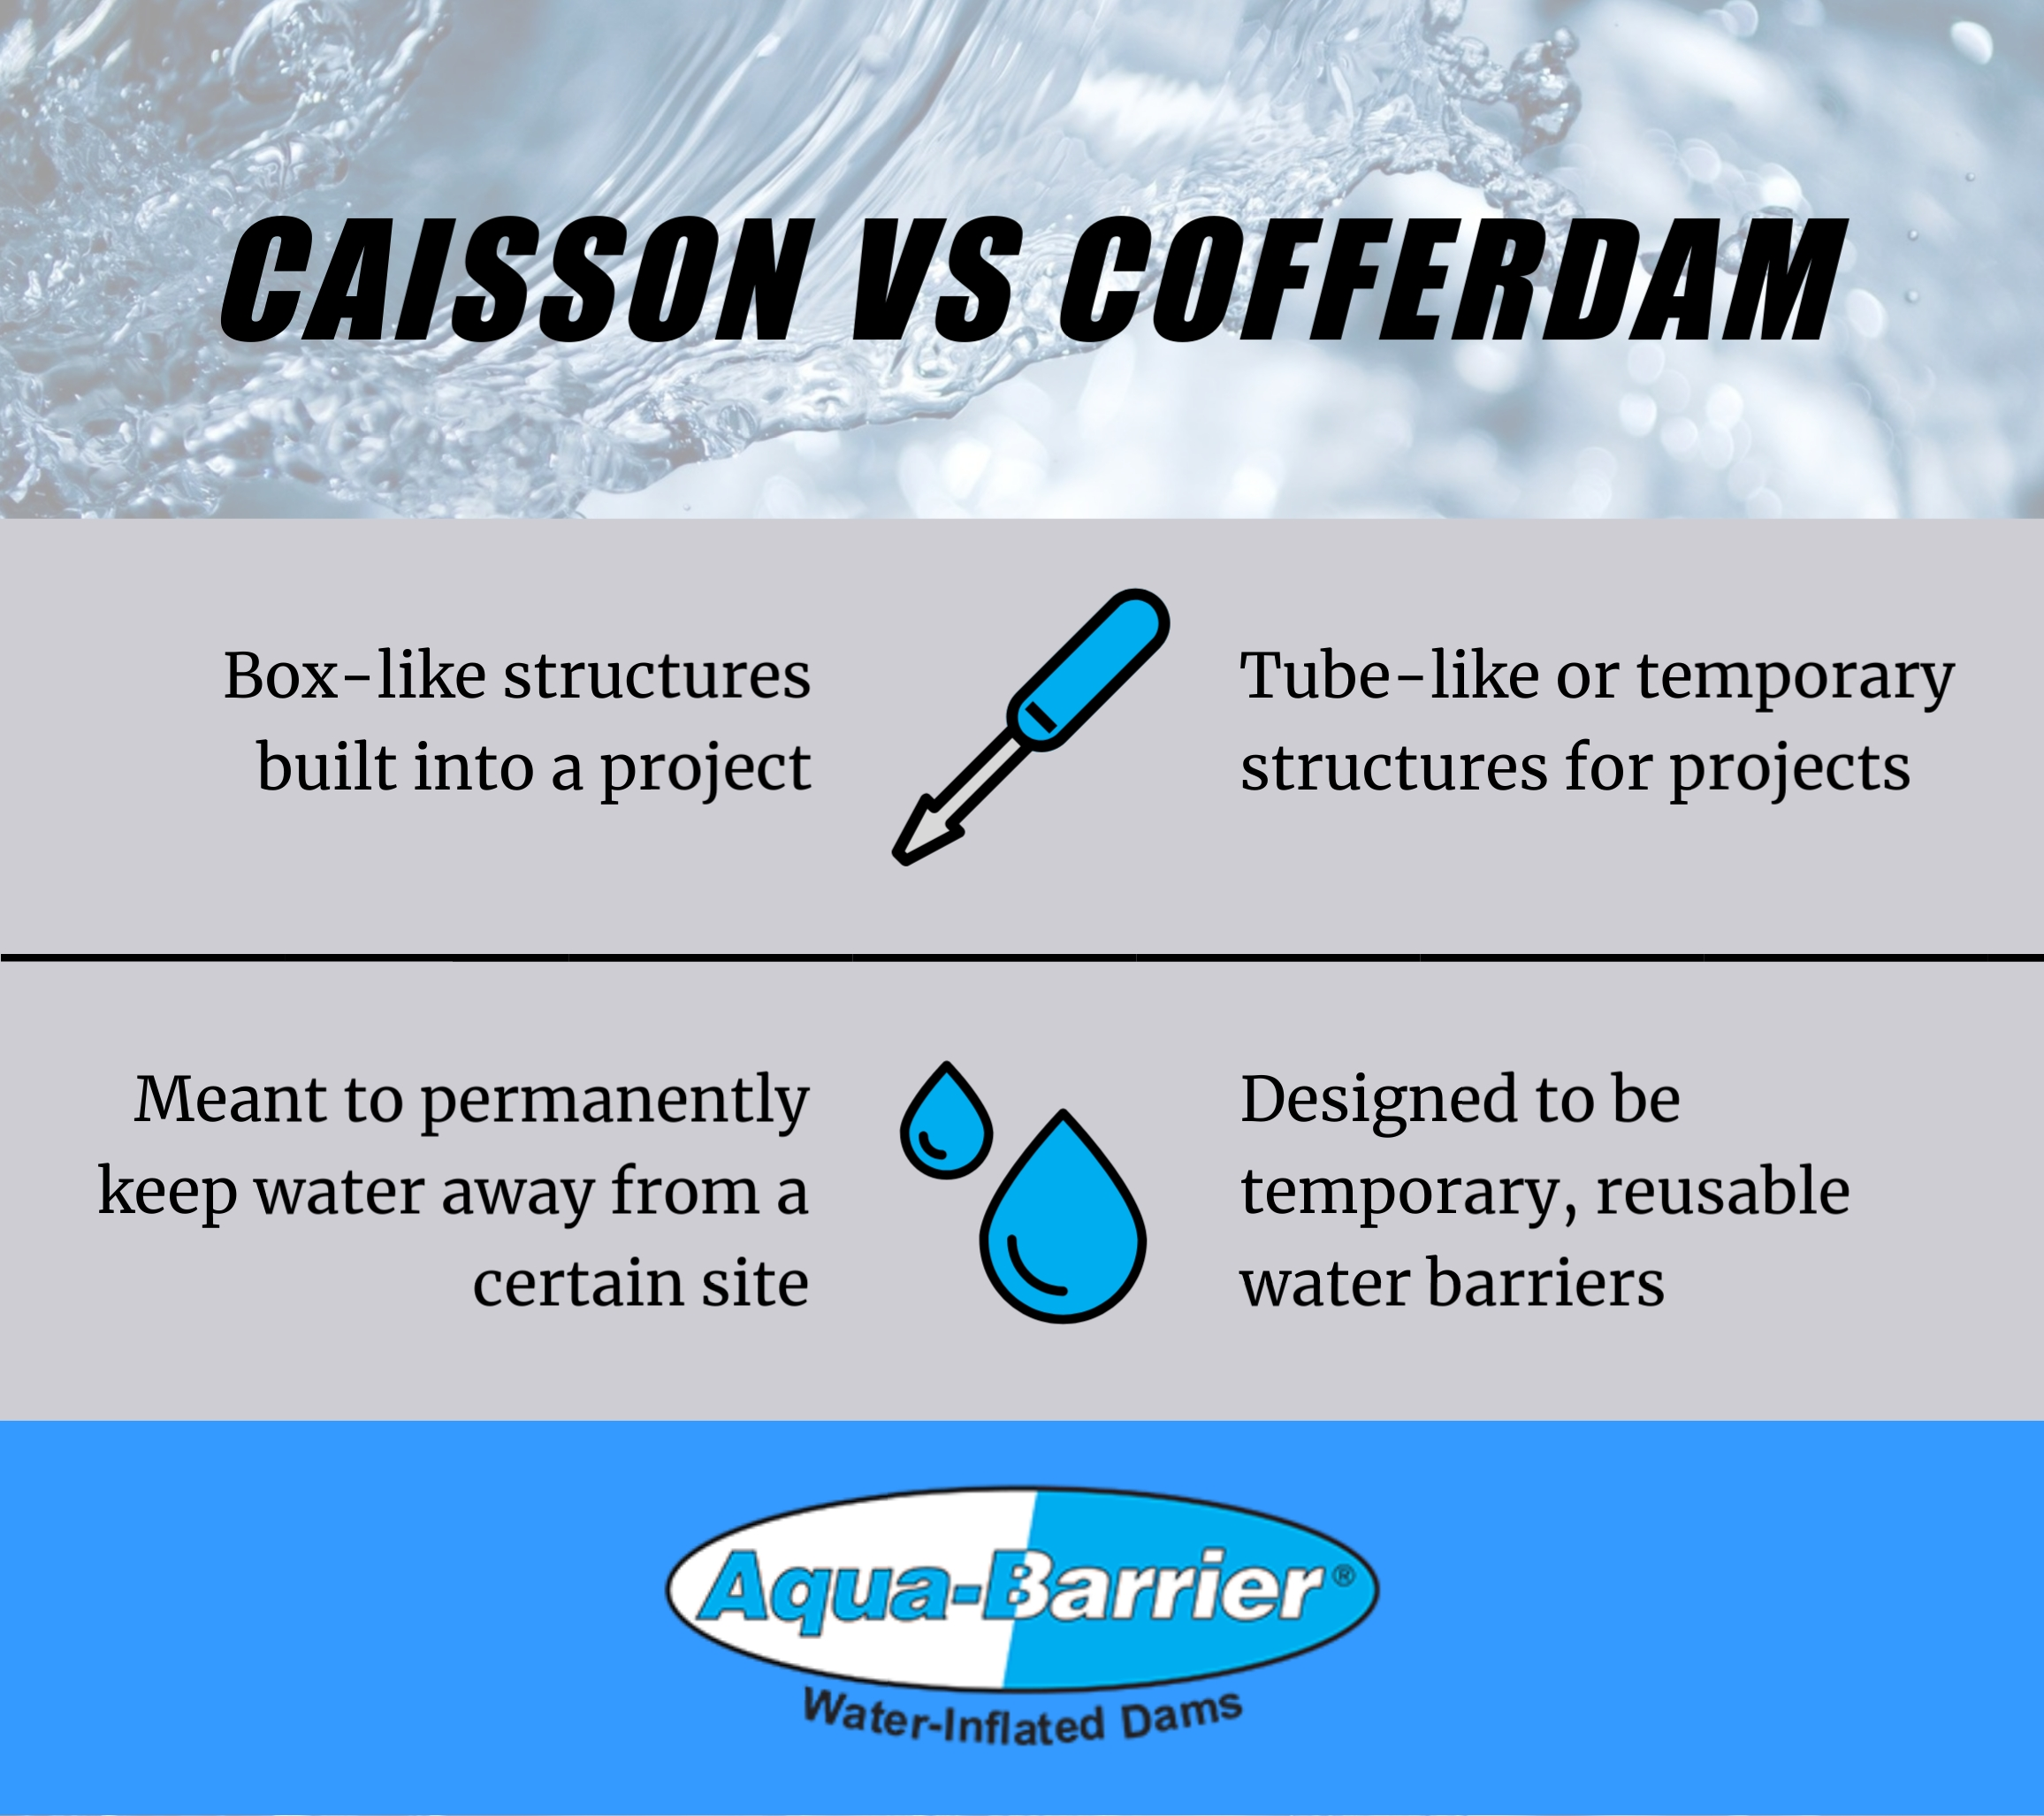 Caisson vs. Cofferdam: What's the Difference?, AquaBarrier, Houston, TX